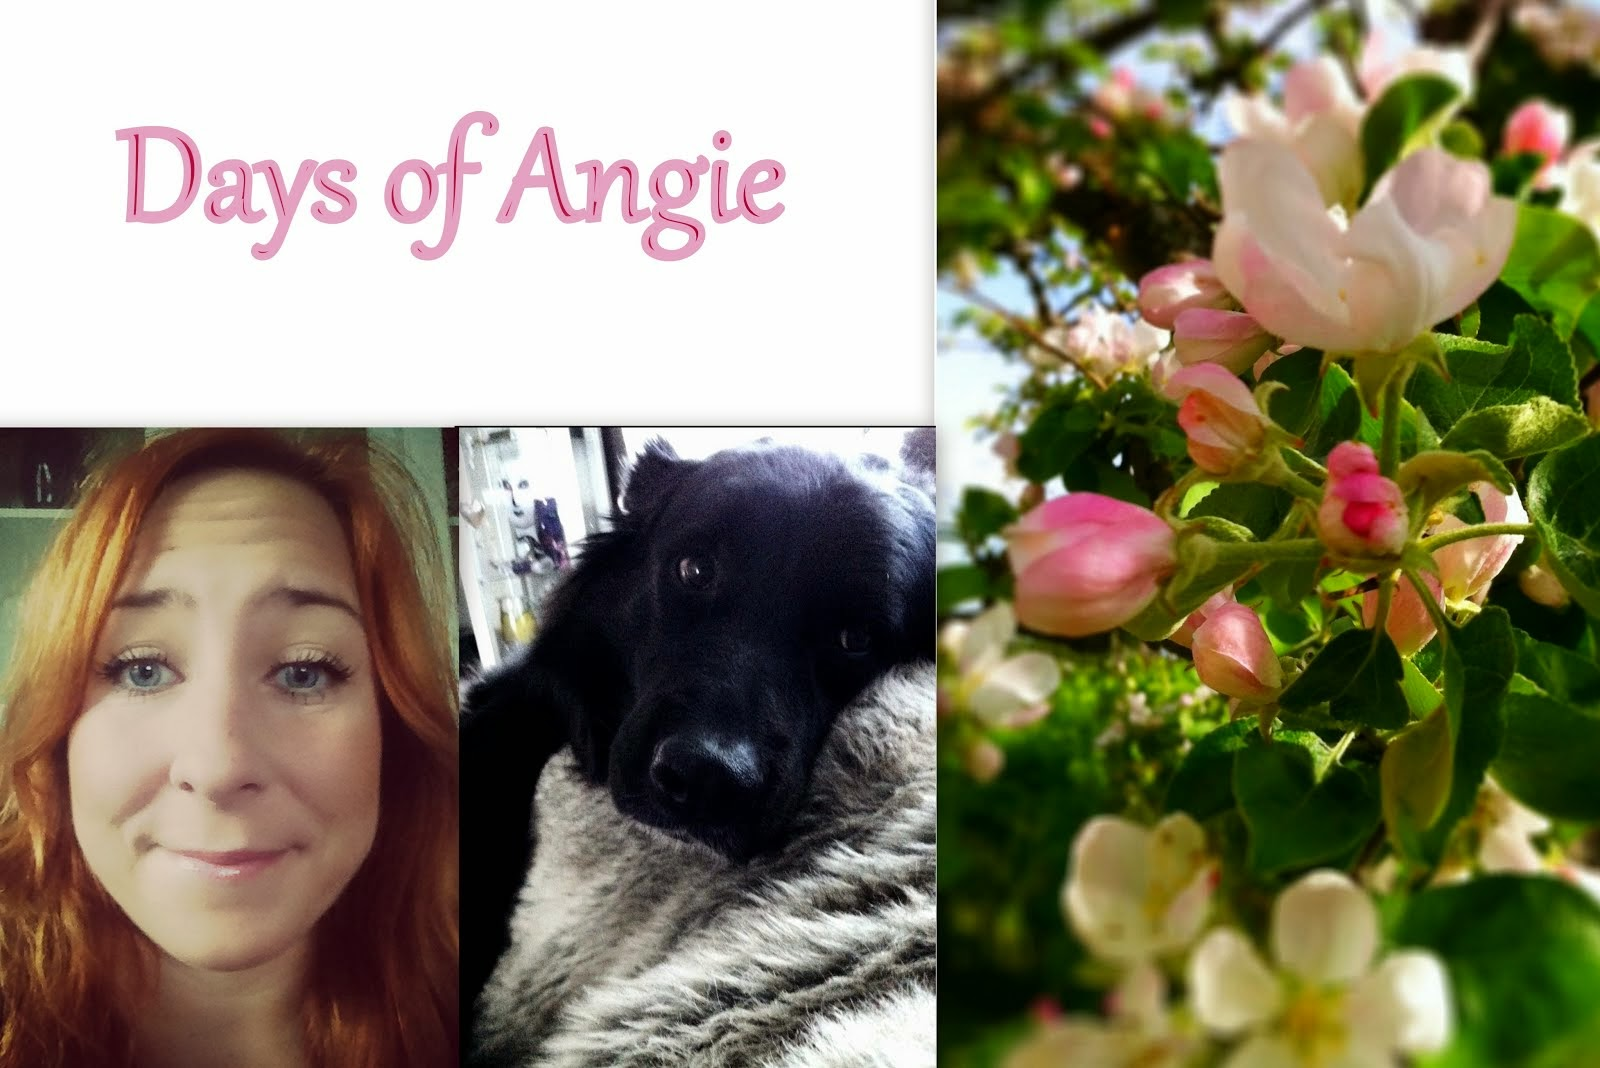 Days of Angie